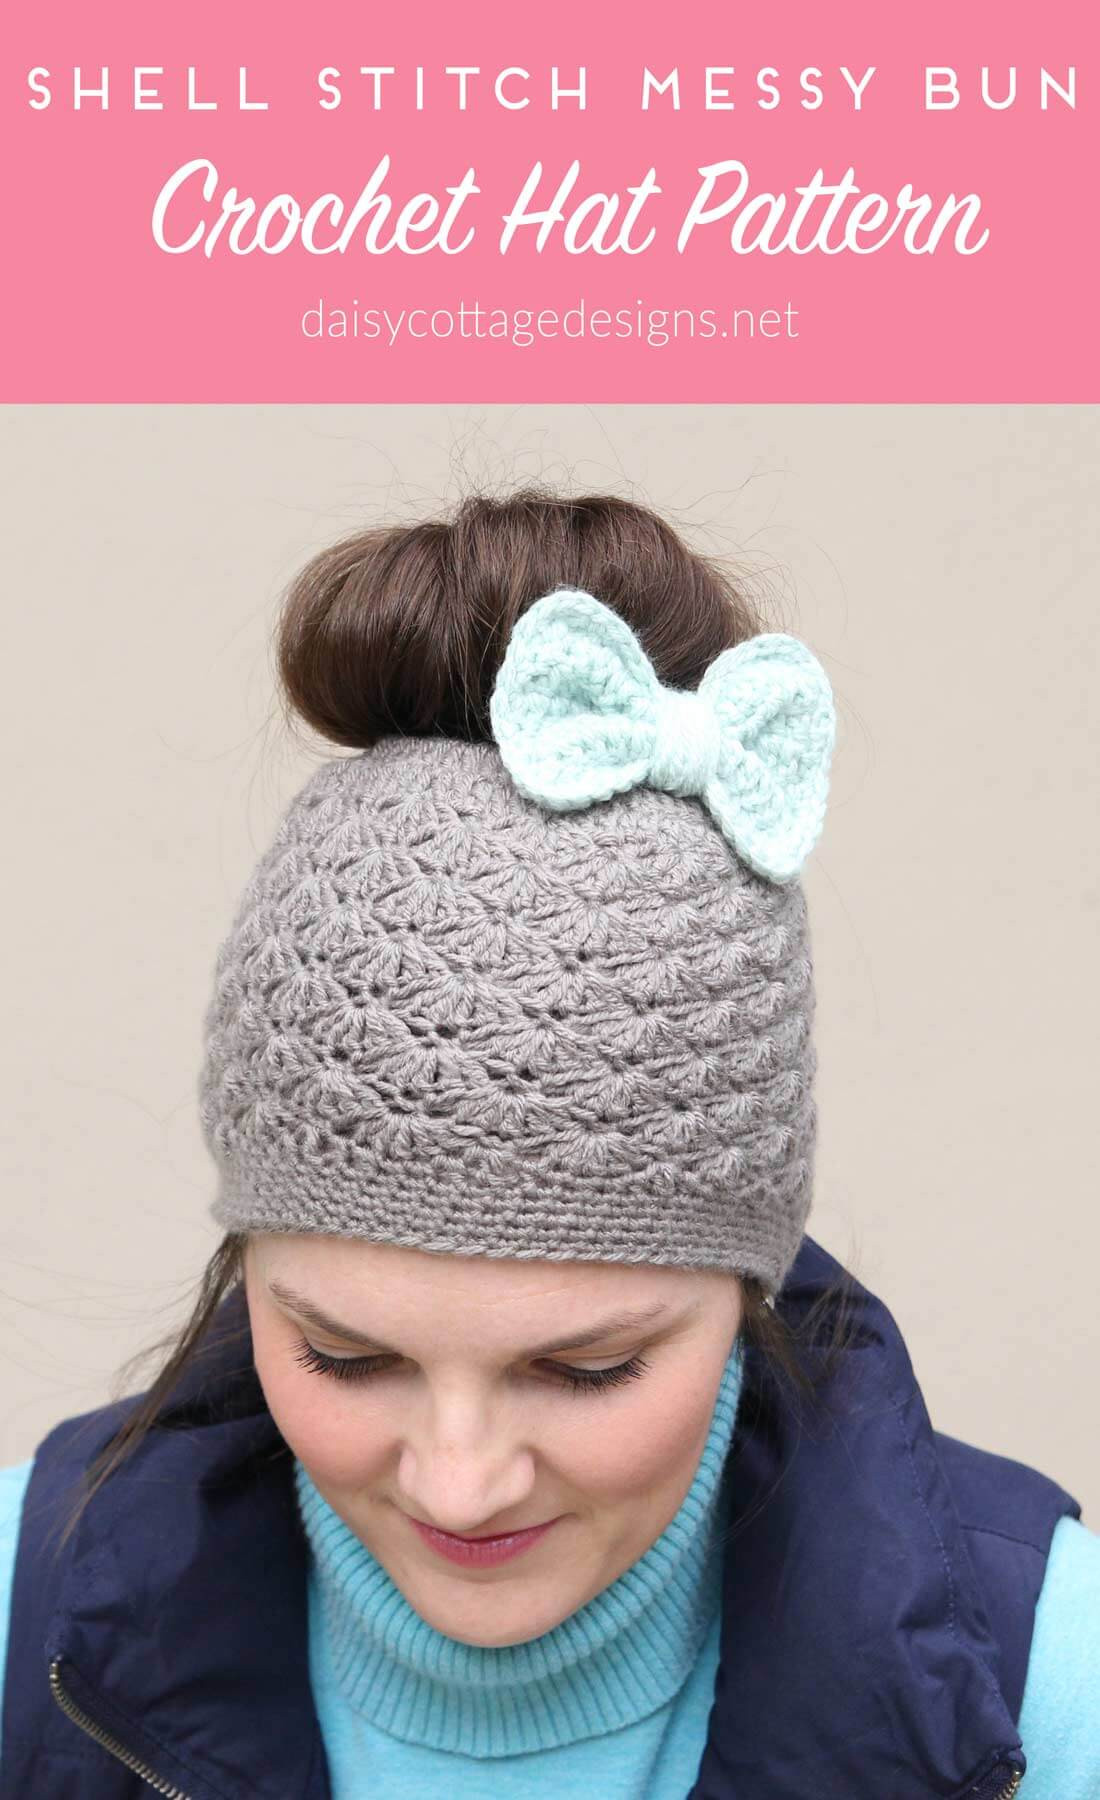 Best Of Shell Stitch Messy Bun Crochet Hat Pattern Daisy Cottage Free Crochet Pattern for Messy Bun Hat Of Beautiful 47 Ideas Free Crochet Pattern for Messy Bun Hat